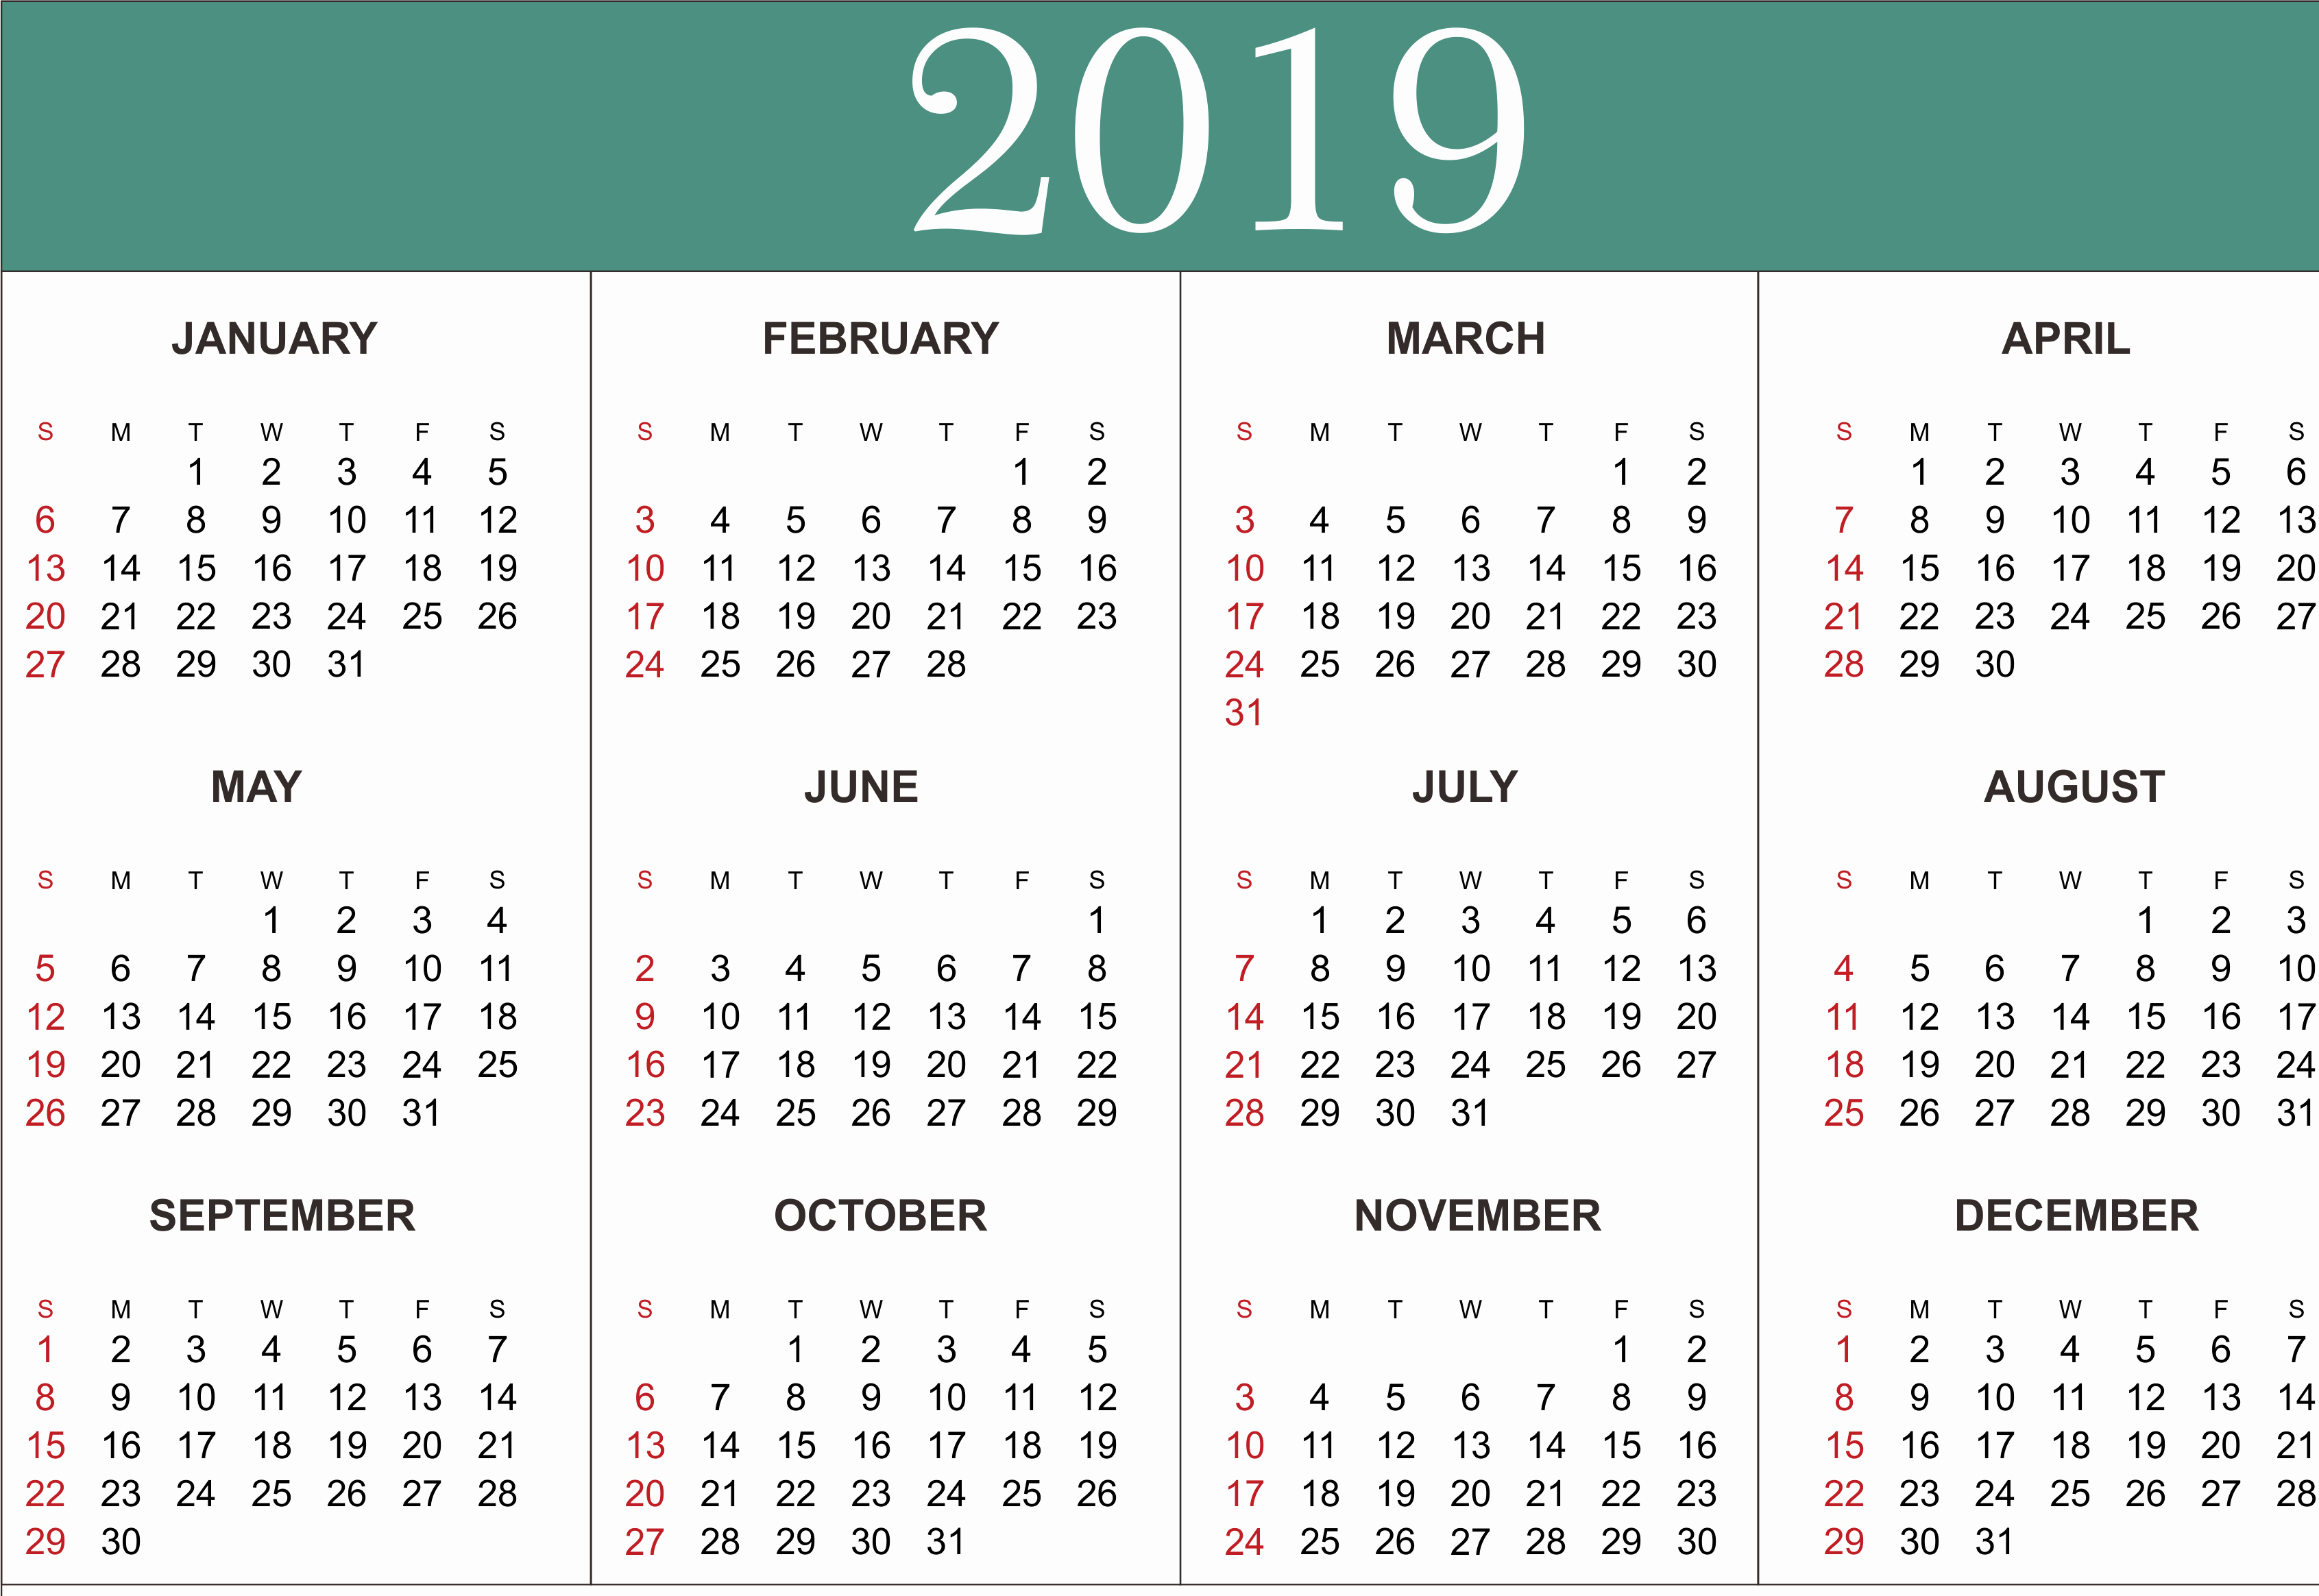 Microsoft Office Calendar Templates 2019 Elegant Free Yearly Calendar 2019 Printable Blank Templates